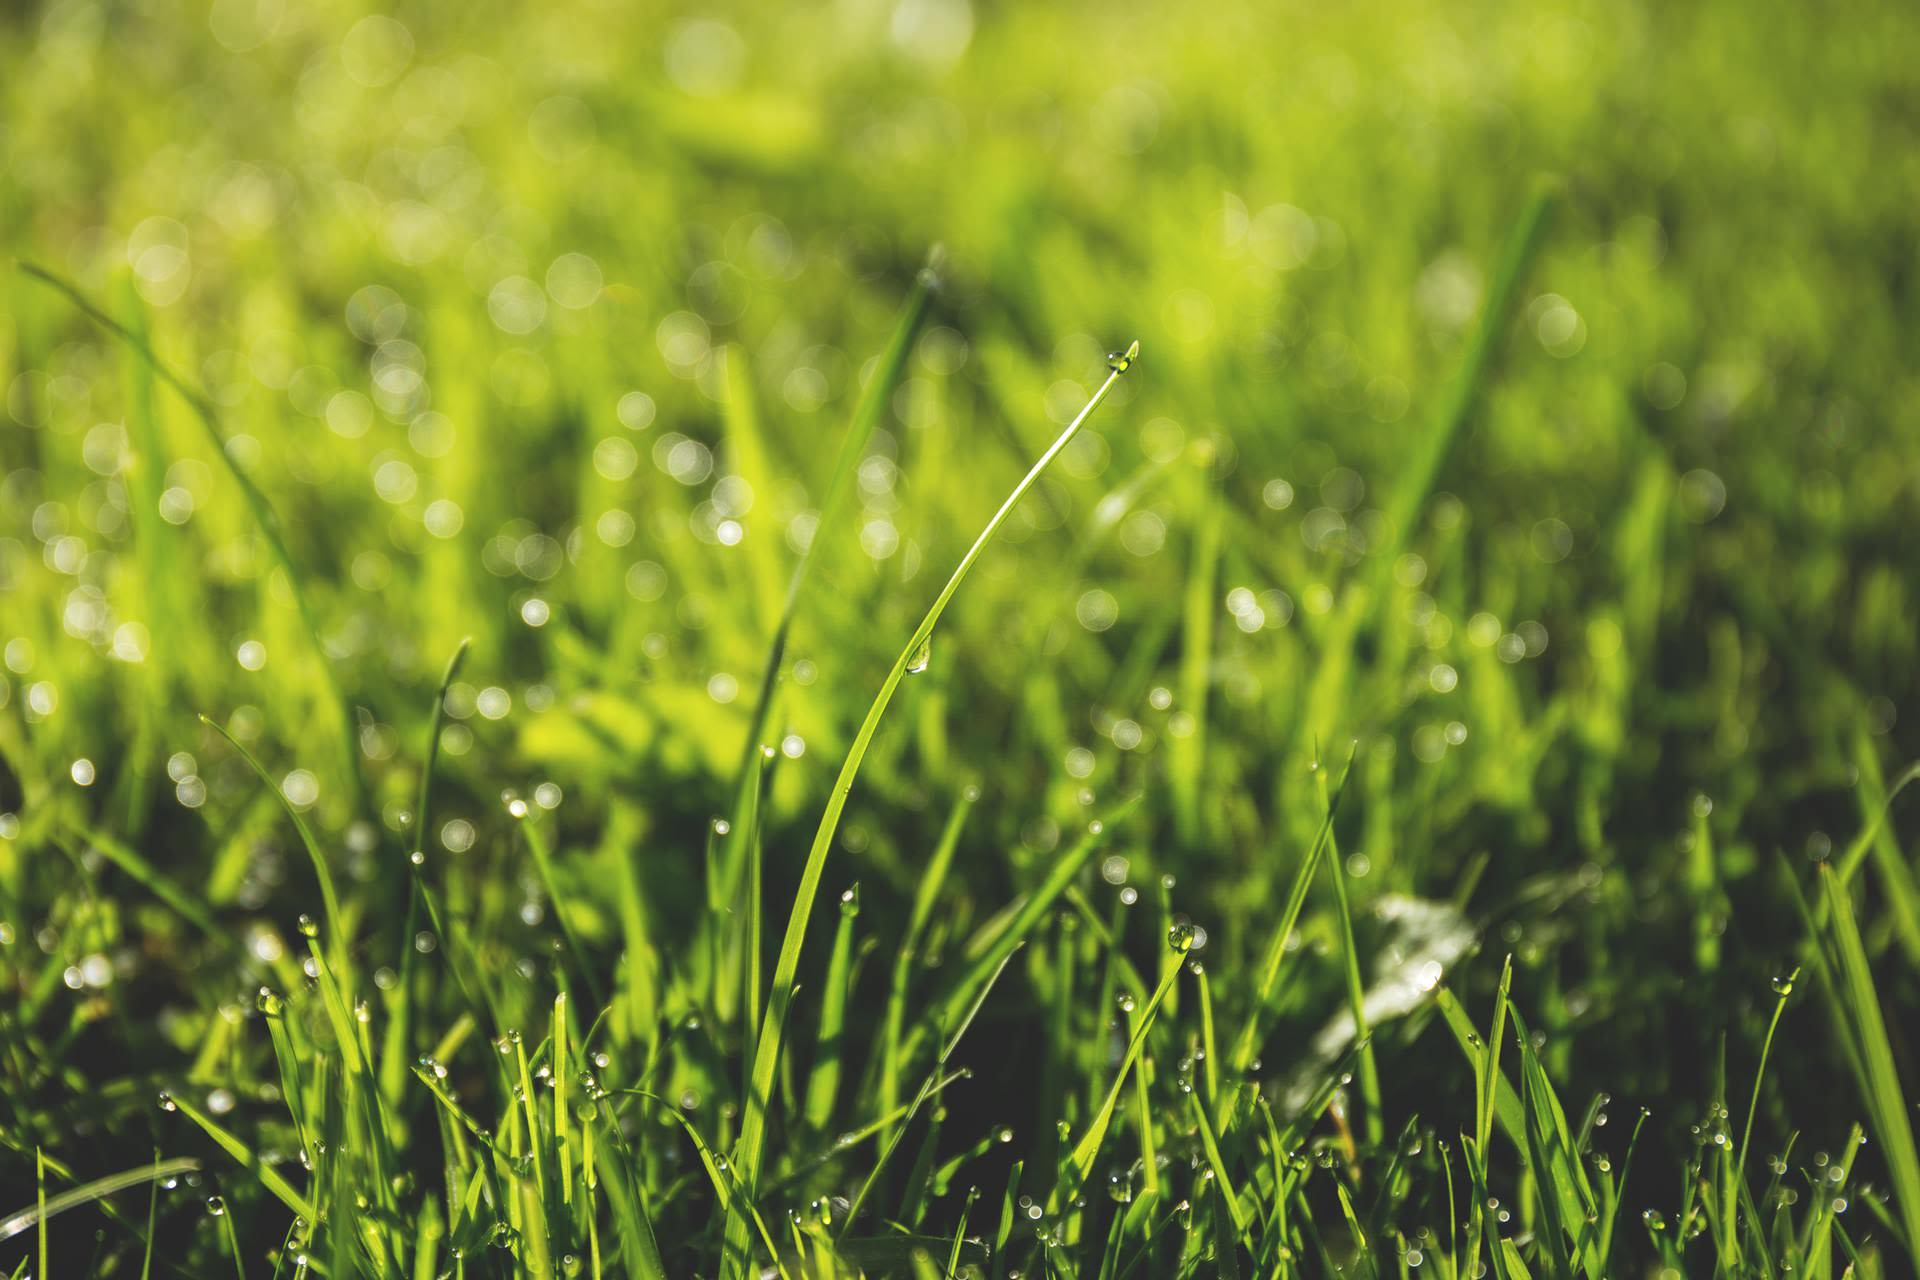 Taking Care of Your South Indiana Lawn Without Wasting Resources